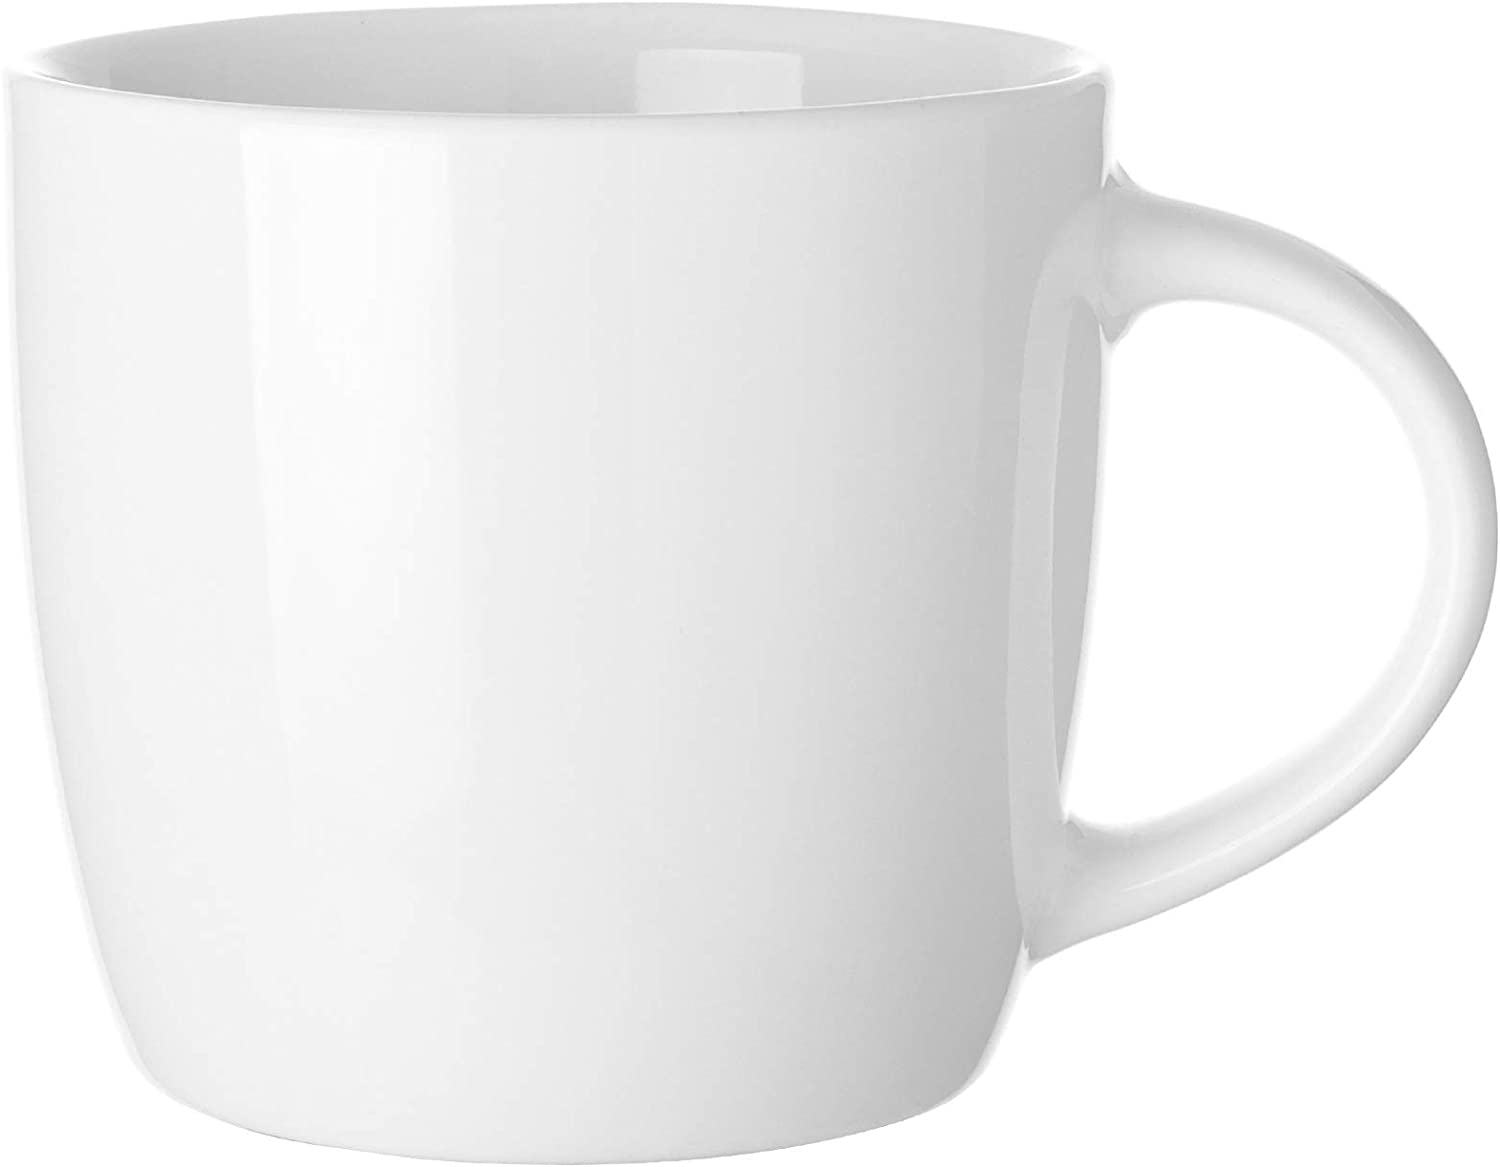 14 OZ Coffee Mug, Harebe Smooth Ceramic Tea Cup, Simple Milk Cup, Suitable for Office and Home, for Men Women - Bright light White